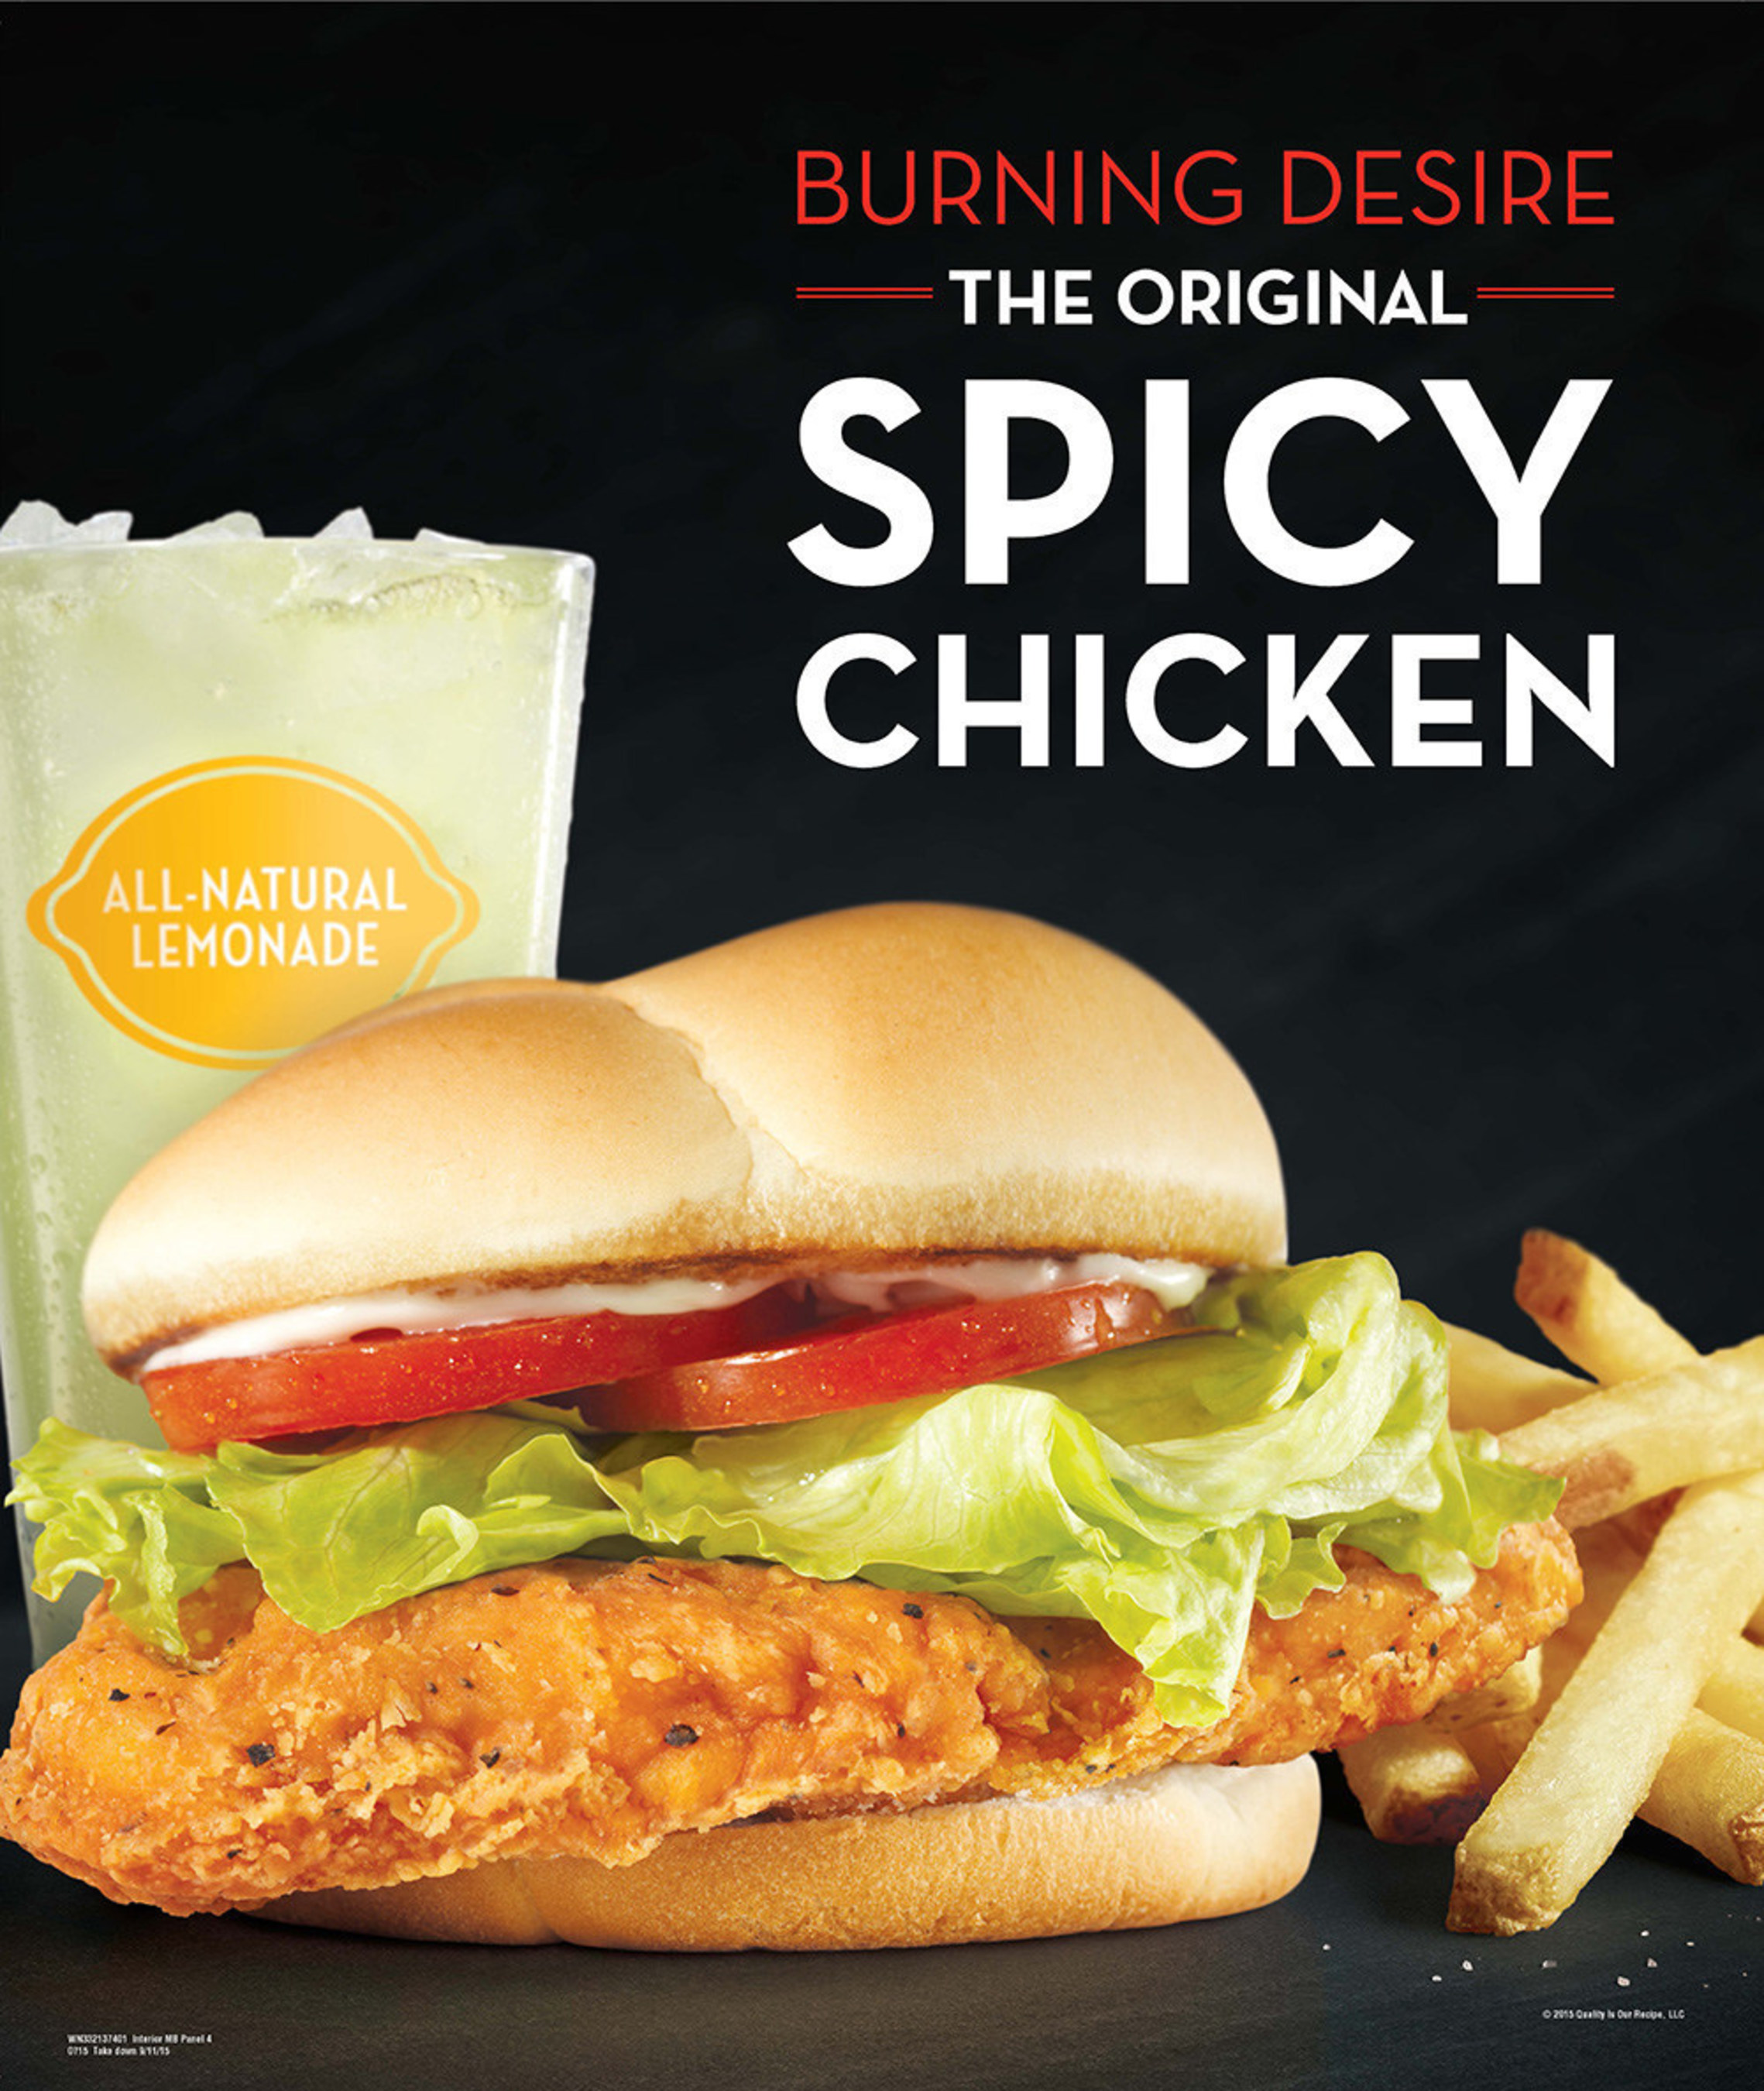 Since 1996 consumers have been craving Wendy's Spicy Chicken Sandwich. The sandwich's tender chicken breast is seasoned with a special mix of black pepper, chili pepper and mustard seed and is topped with mayo, lettuce, and a red, ripe tomato - all on a premium toasted bun. It is easy to see why consumers demanded it become a permanent menu item. As fans know, once you've had a Spicy Chicken Sandwich, nothing else will satisfy the craving.